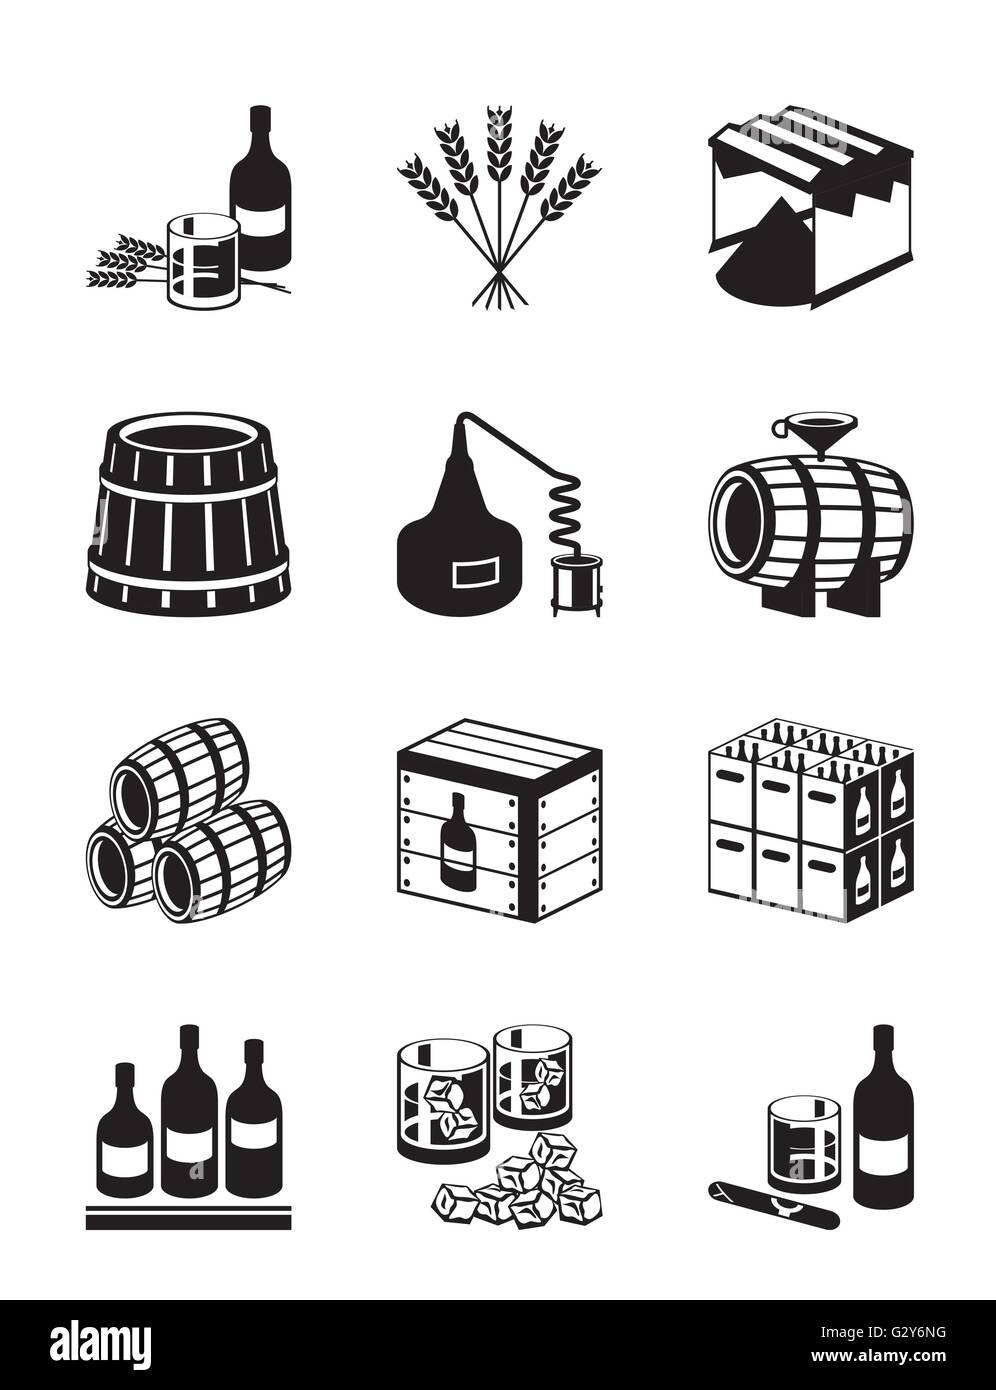 Production of whiskey and brandy - vector illustration - Stock Image